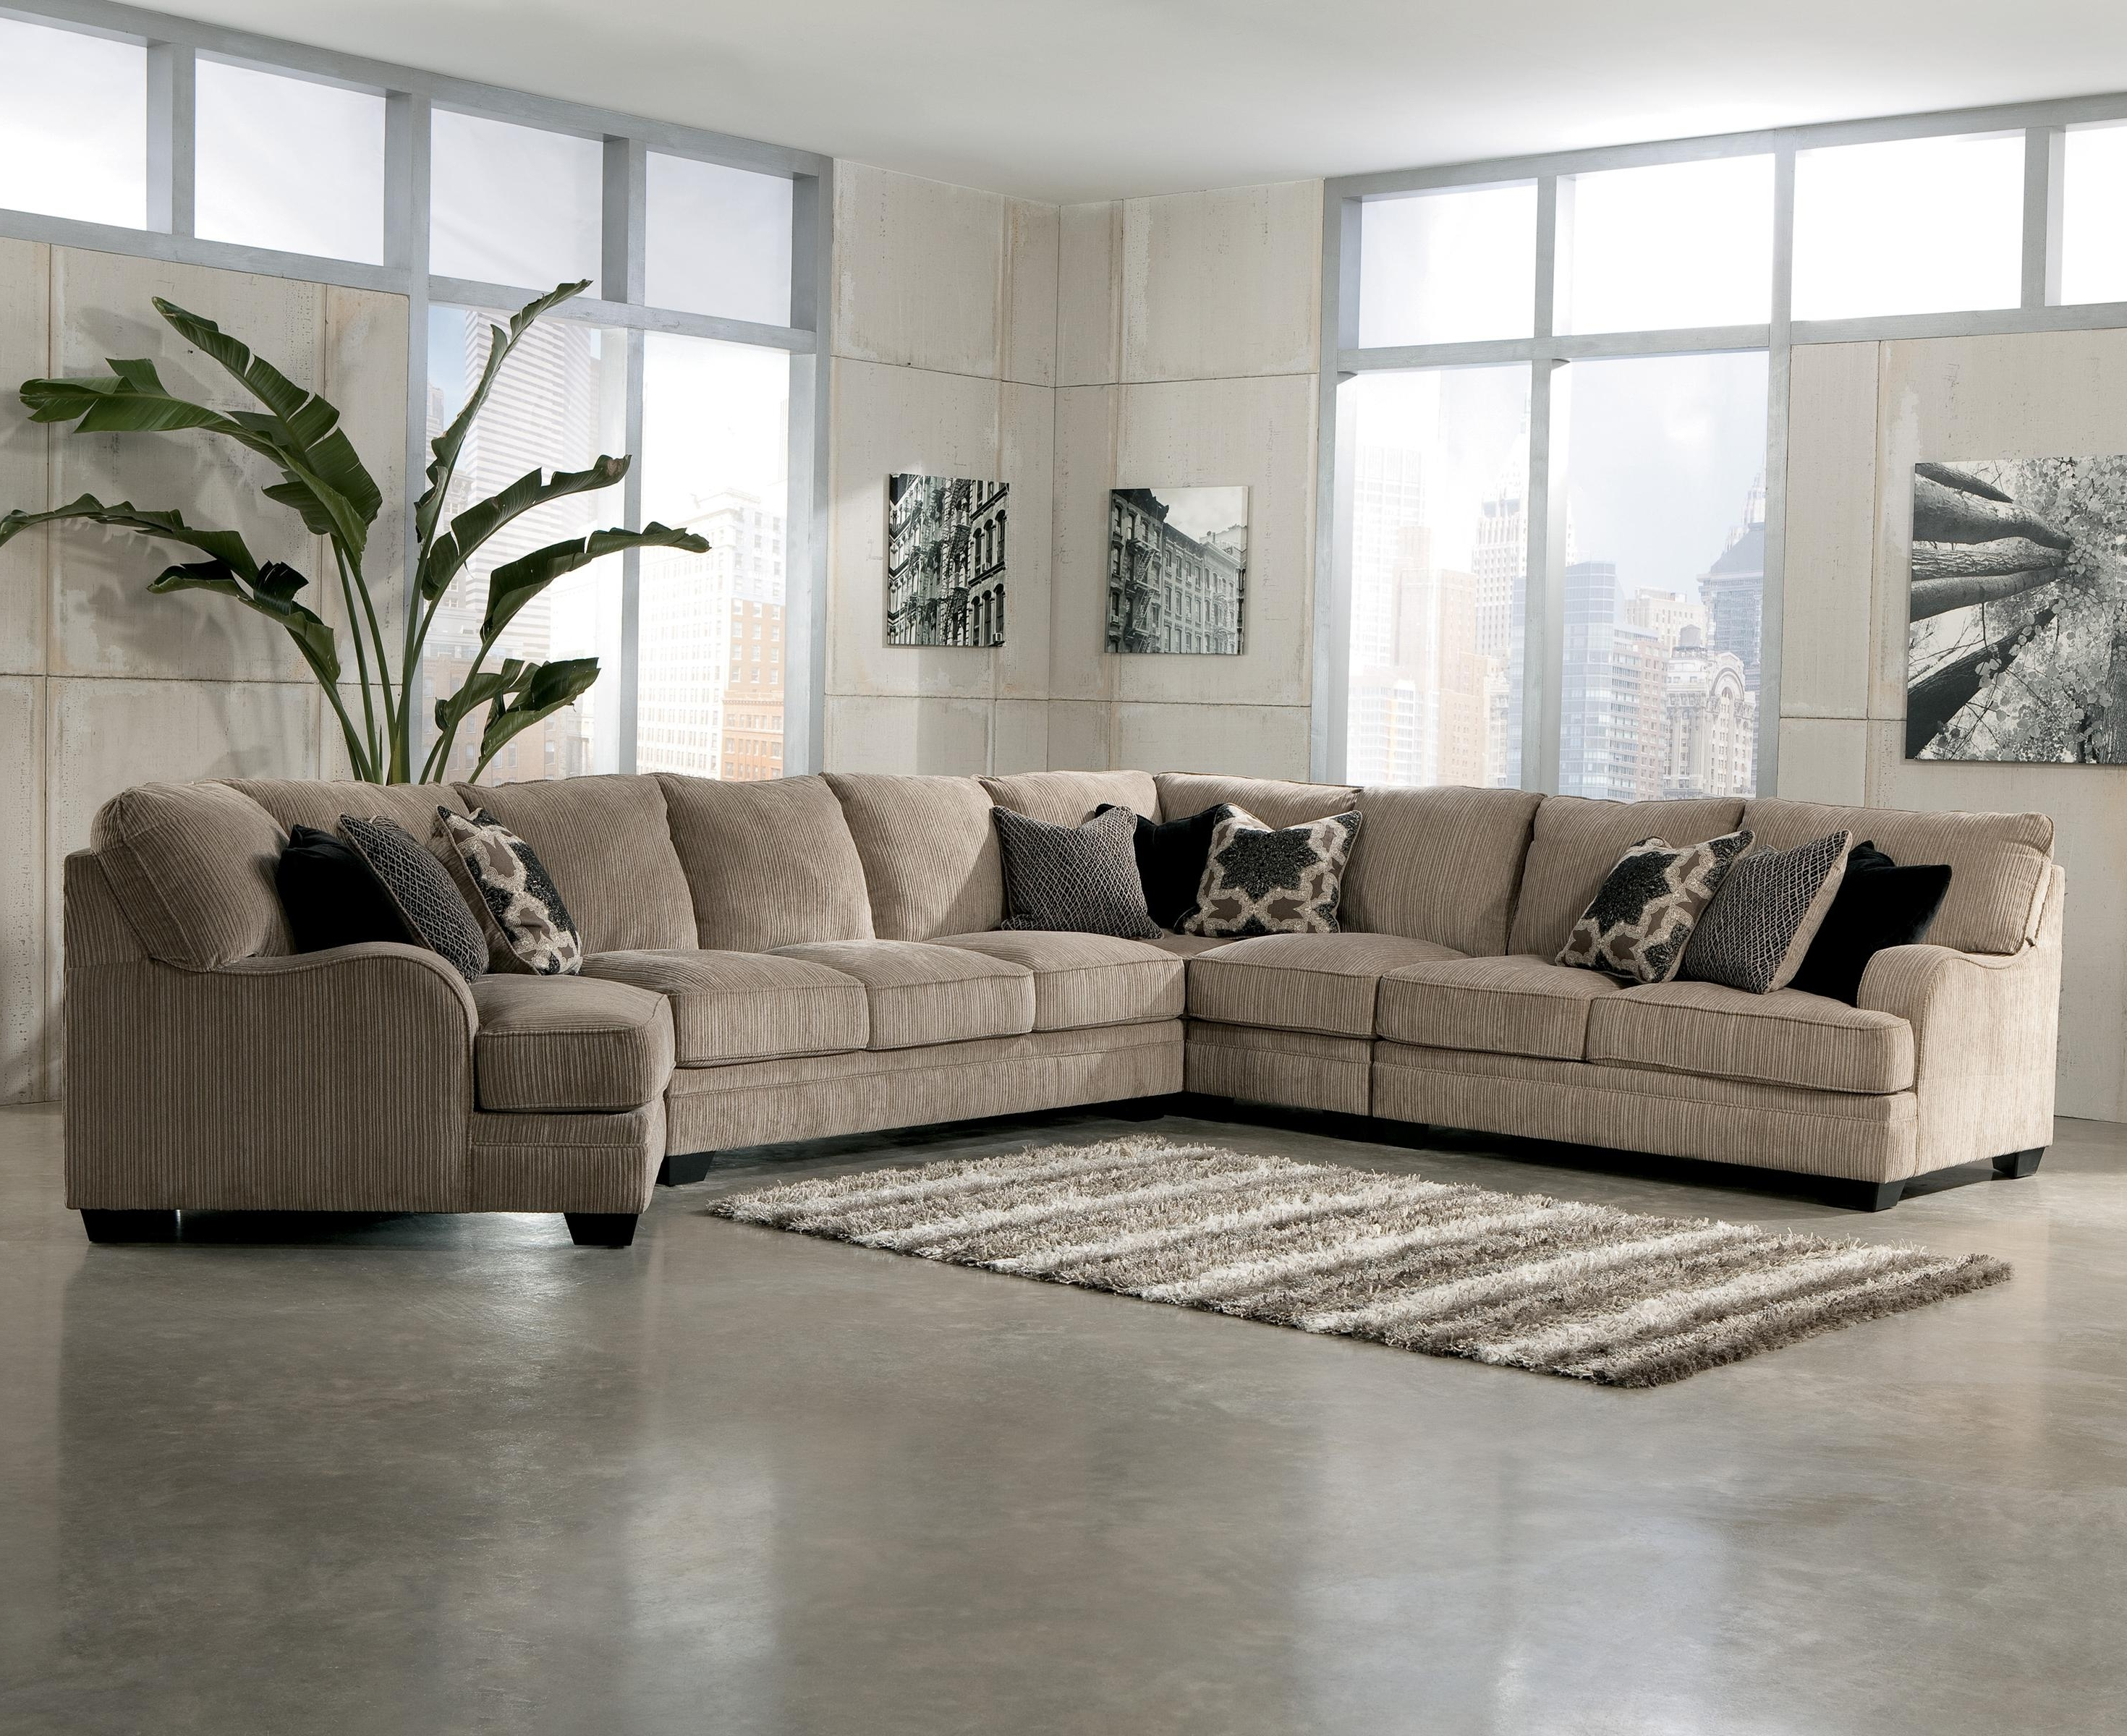 Signature Designashley Katisha – Platinum 5 Piece Sectional In Widely Used Sectional Sofas In Greenville Sc (View 14 of 15)